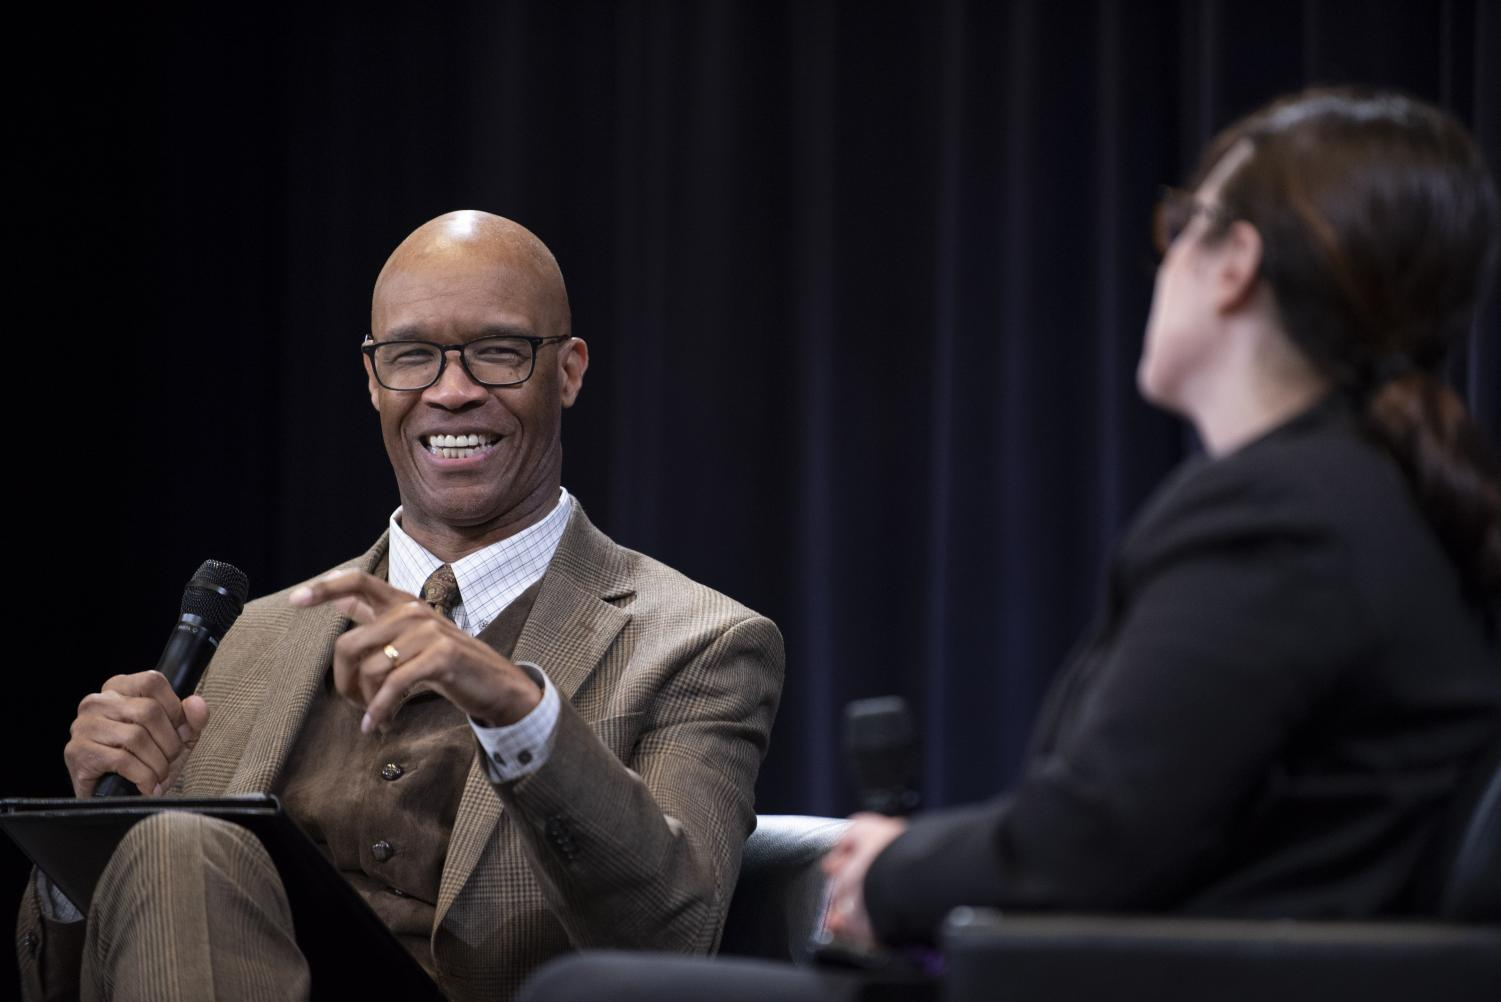 Charles Whitaker at an event last month speaking with New York Times reporter Maggie Haberman. Whitaker was named the dean of Medill Wednesday.